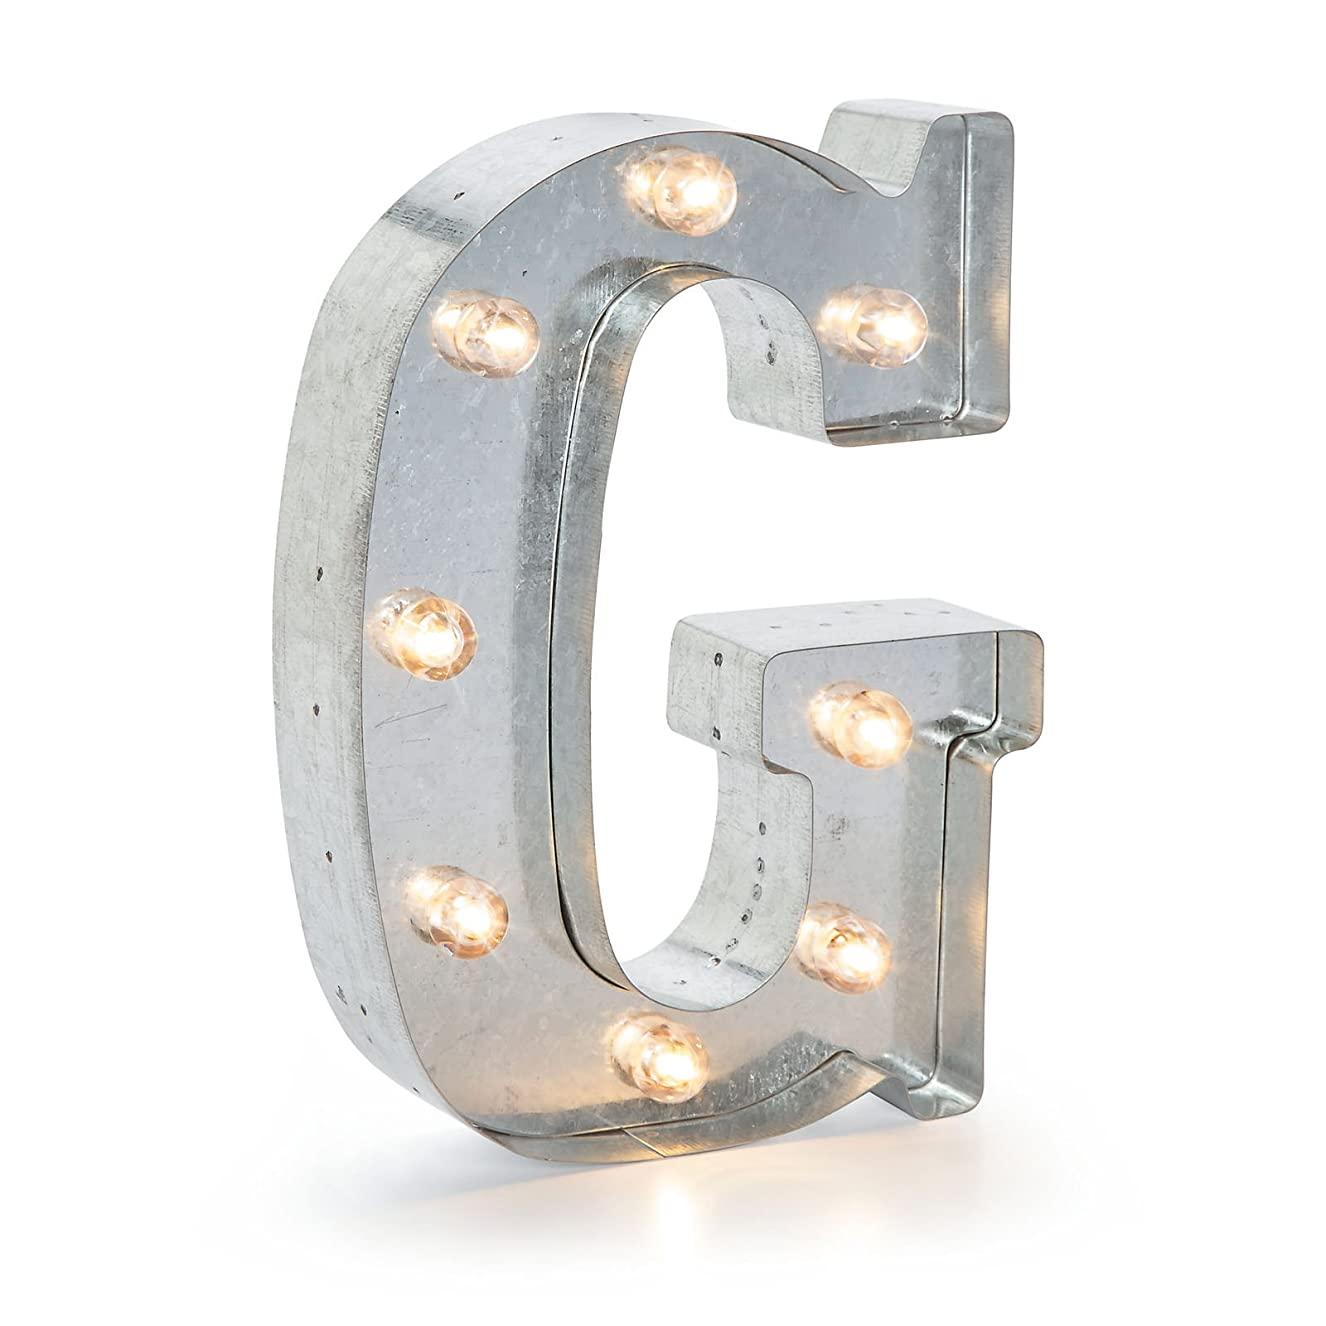 Darice Marquee Letters - G - Galvanized Silver - 9.875 inches cnqisiehki1871